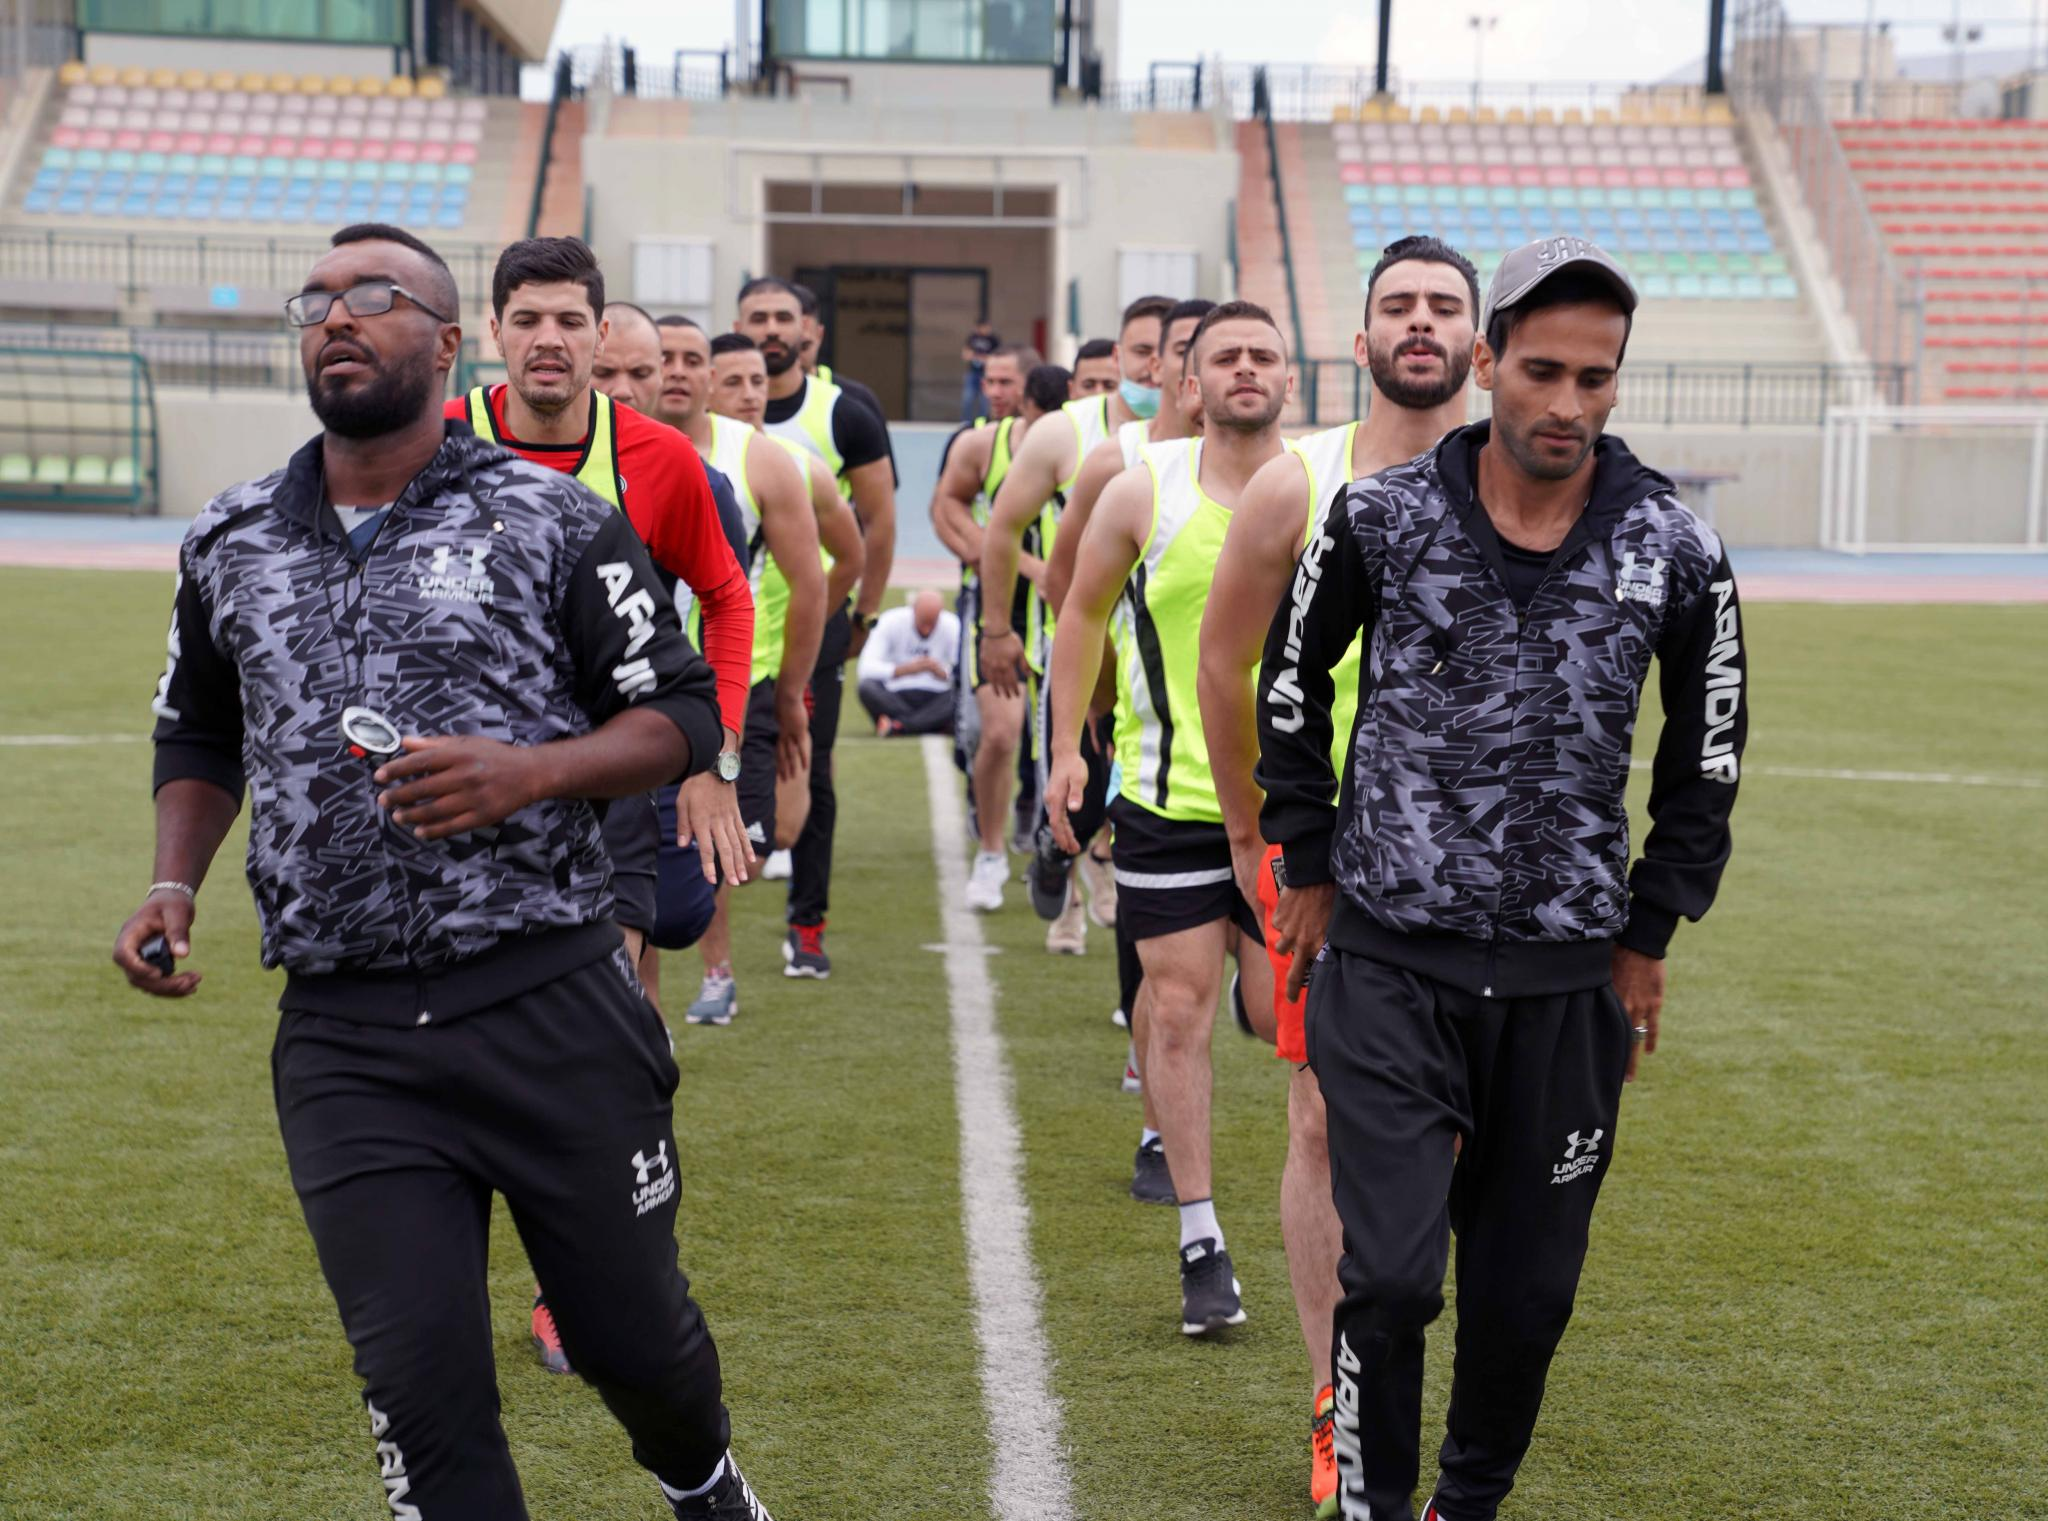 The Palestinian Team of the Palestine National Athletics Federation